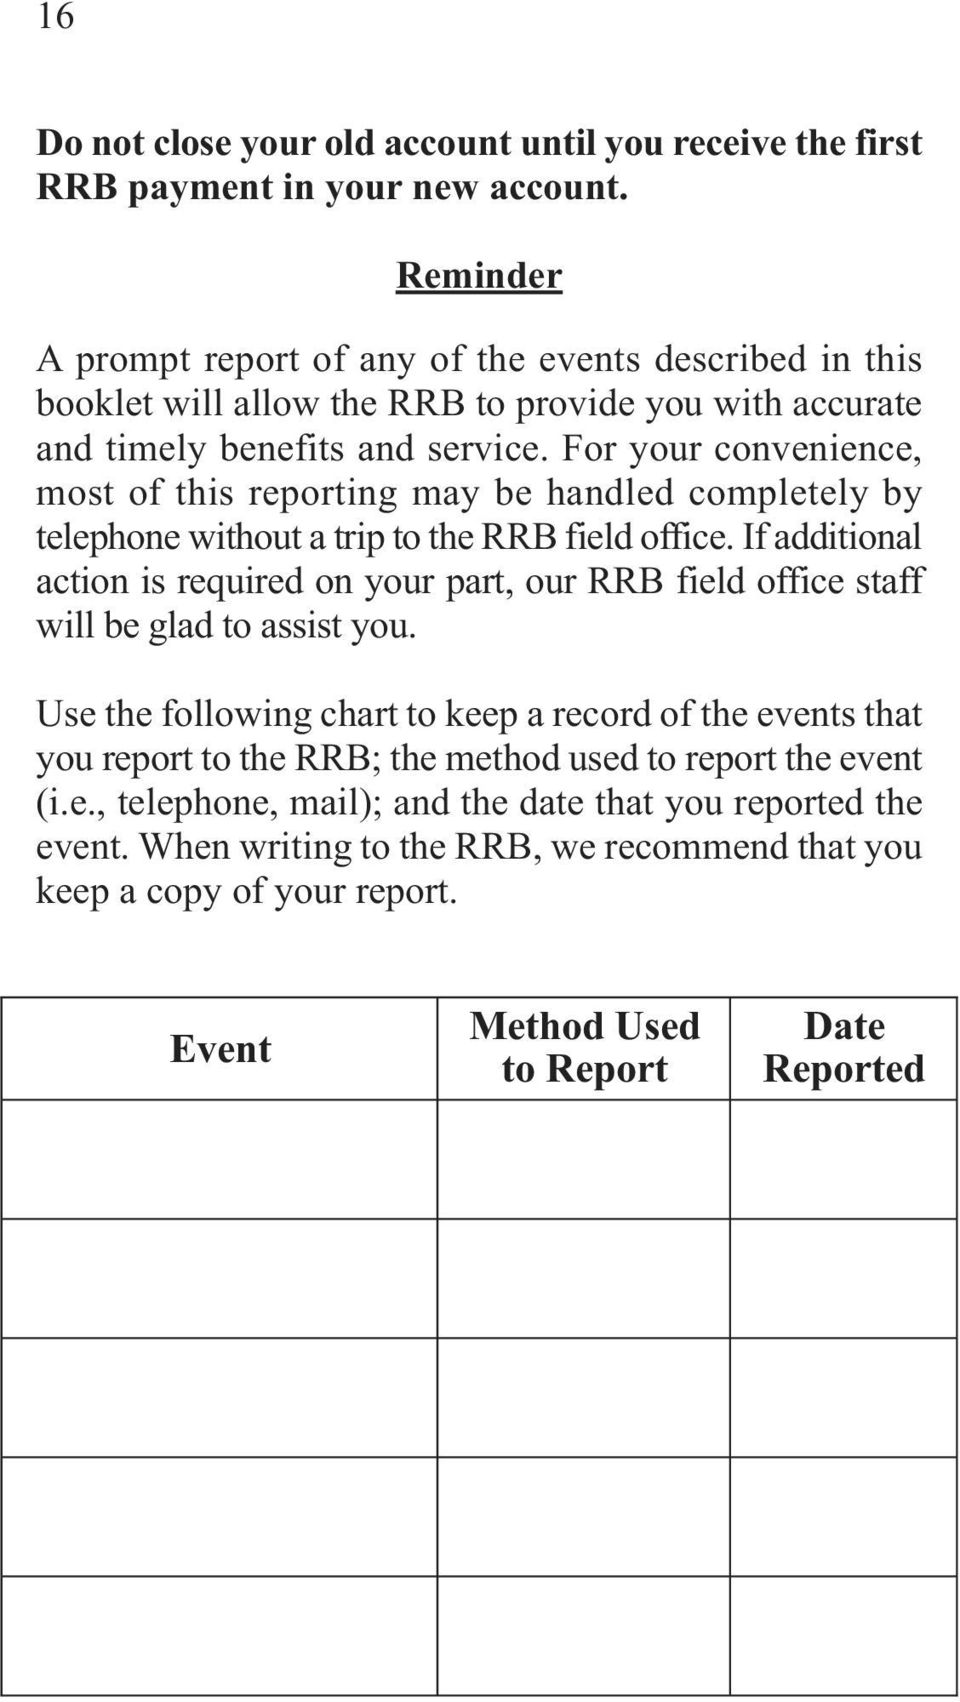 For your convenience, most of this reporting may be handled completely by telephone without a trip to the RRB field office.